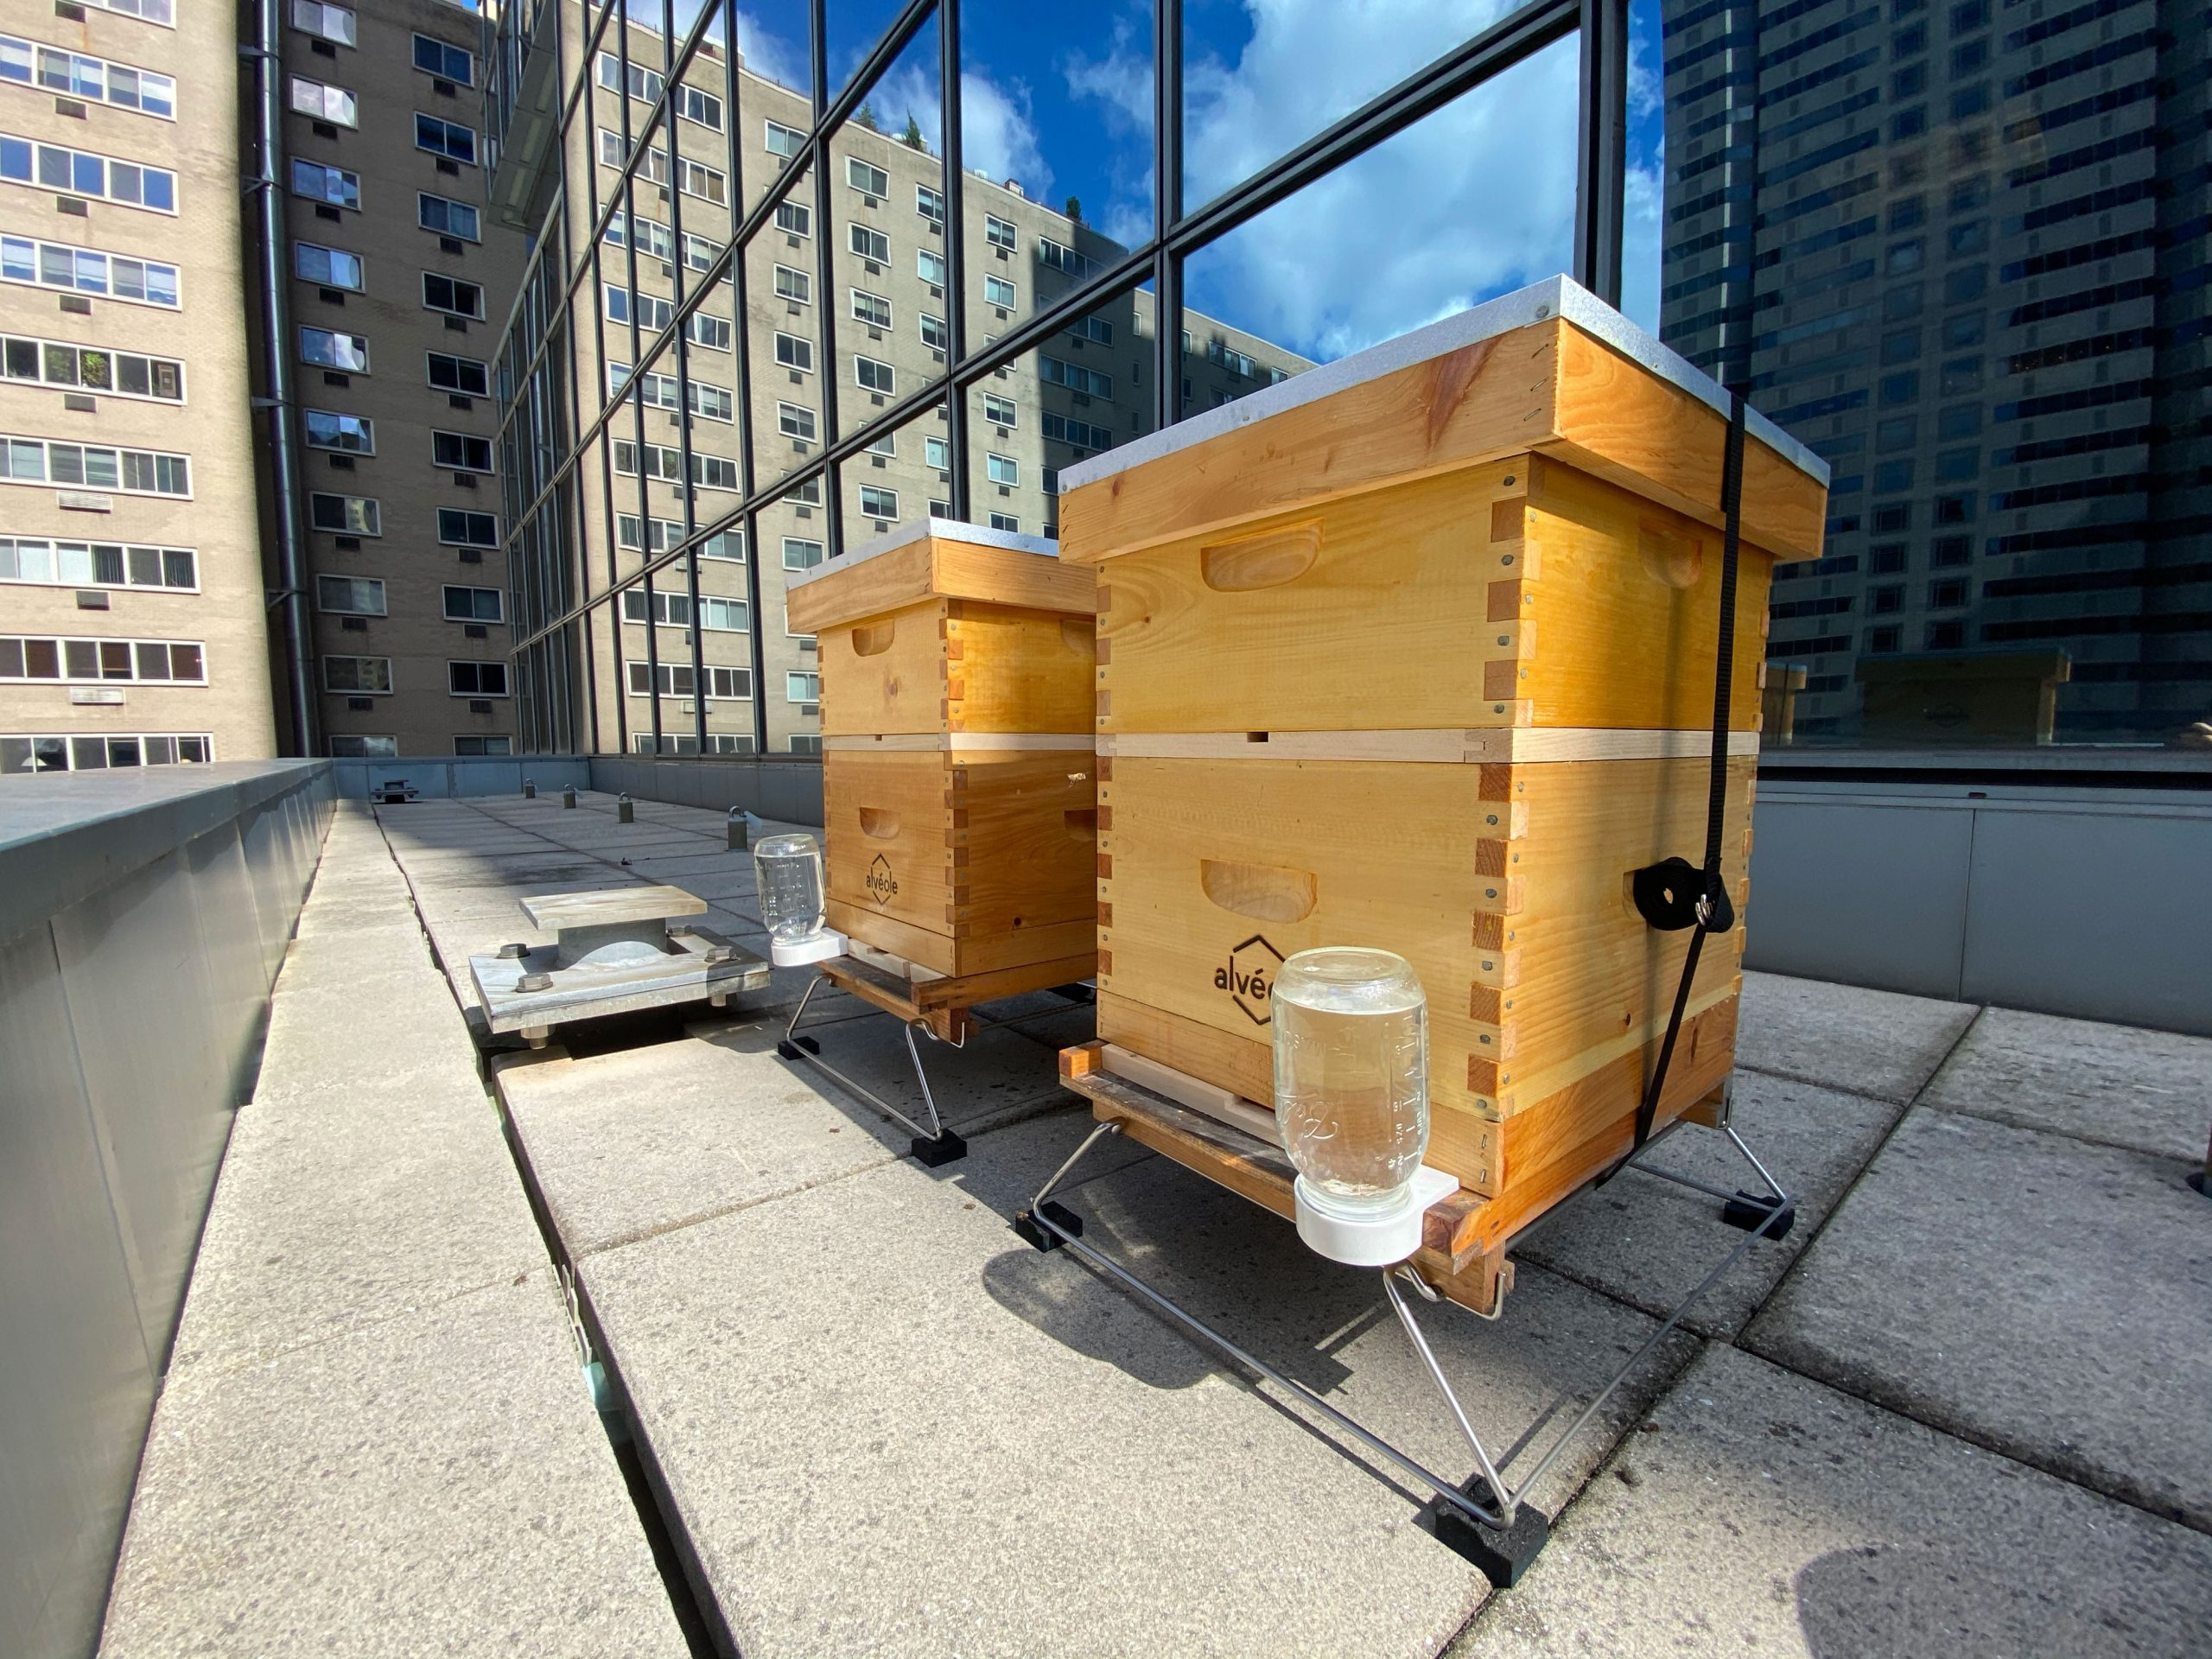 View of the honeybee hives on a balcony at 1901 Market Street facing the building's windows